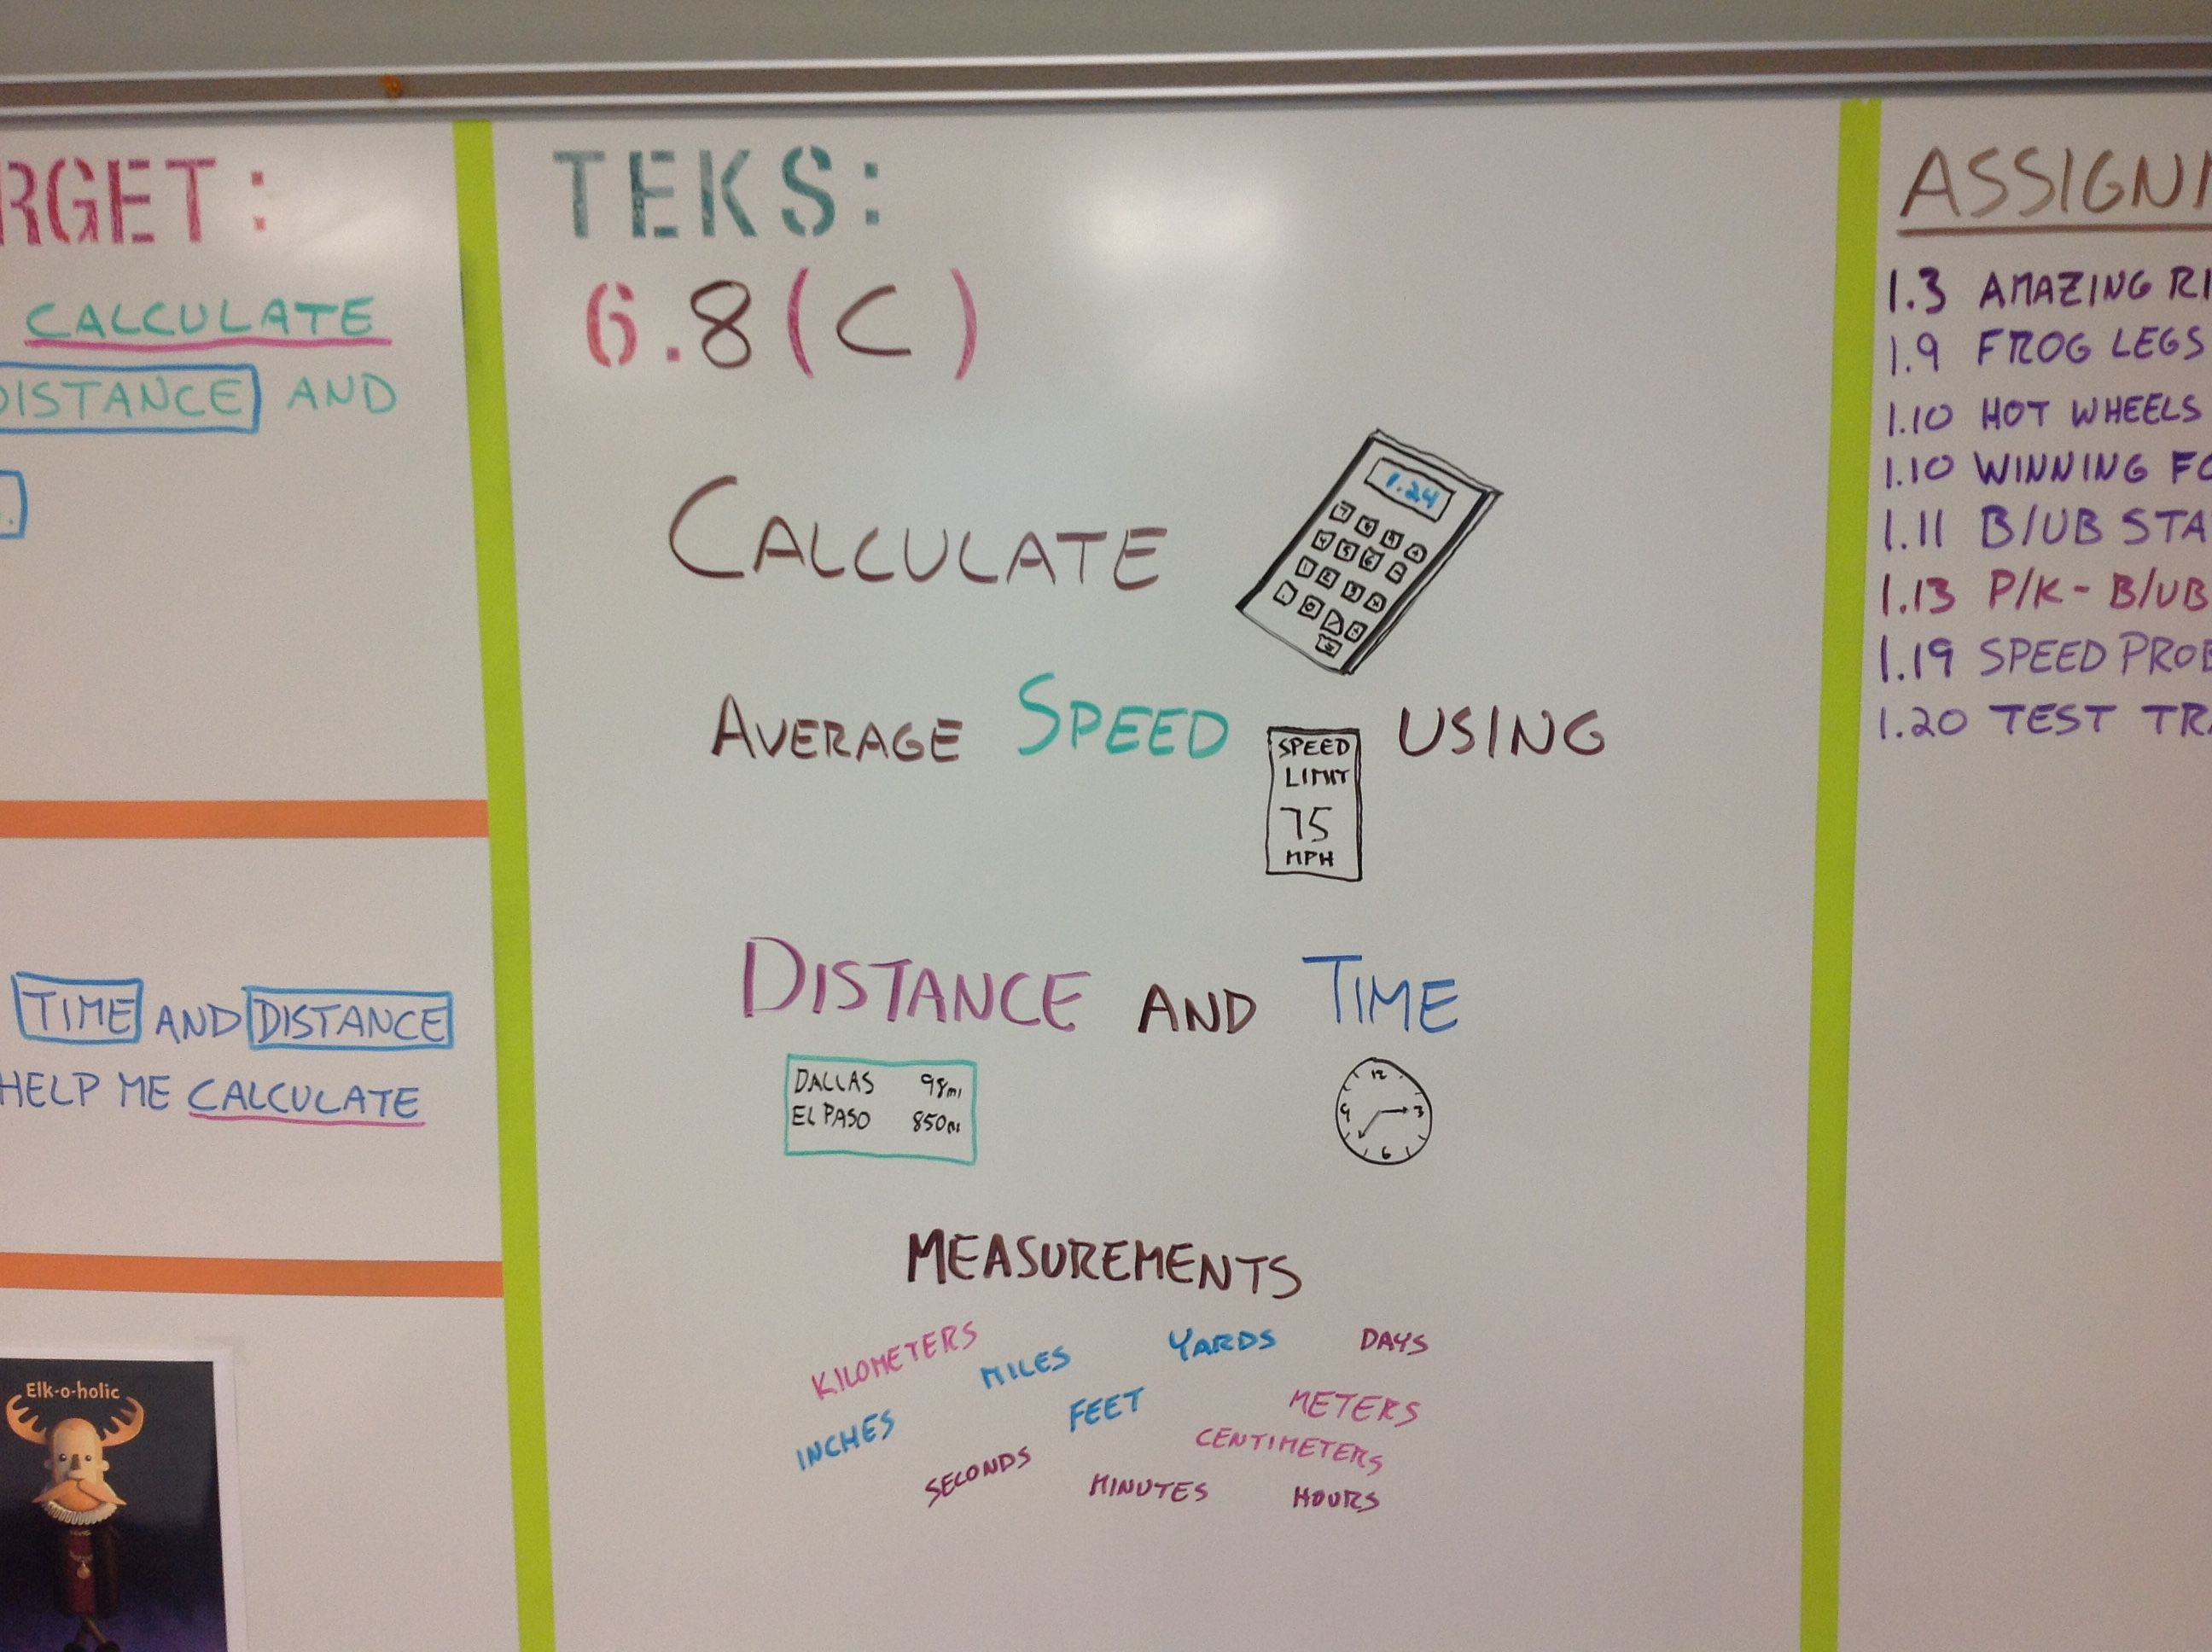 Teks 6 8 C Calculating Speed